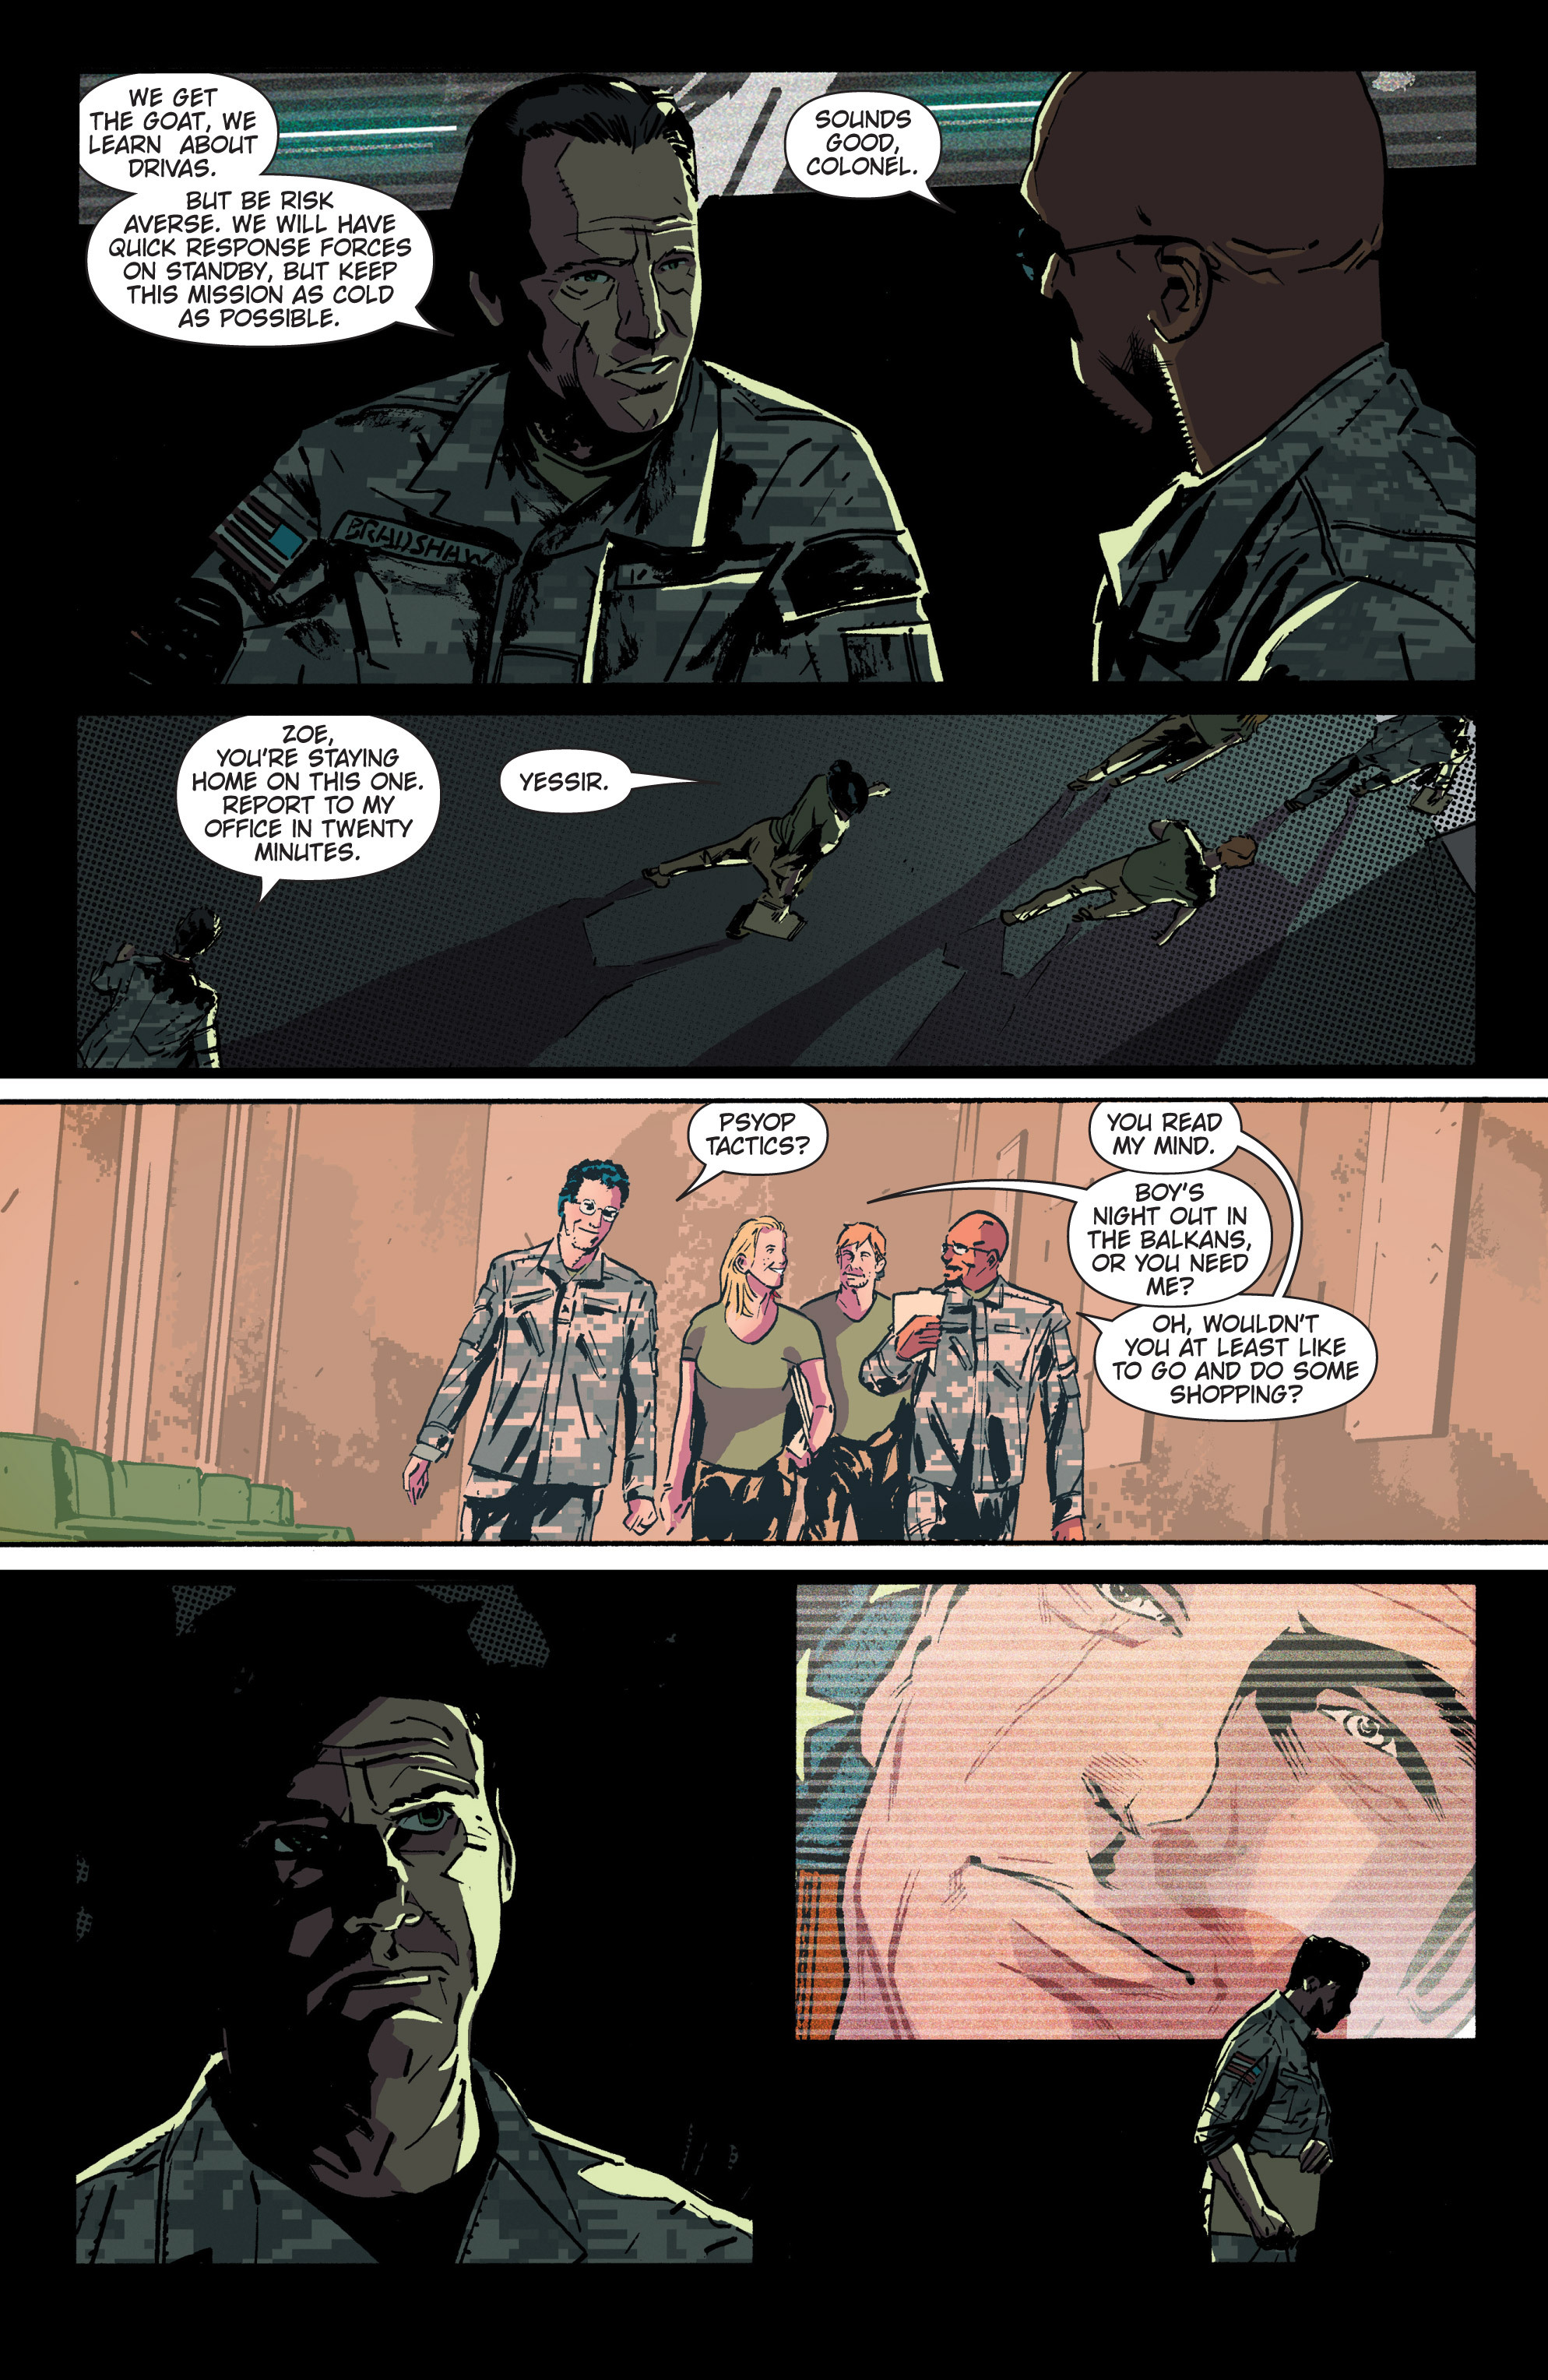 Read online The Activity comic -  Issue #7 - 12